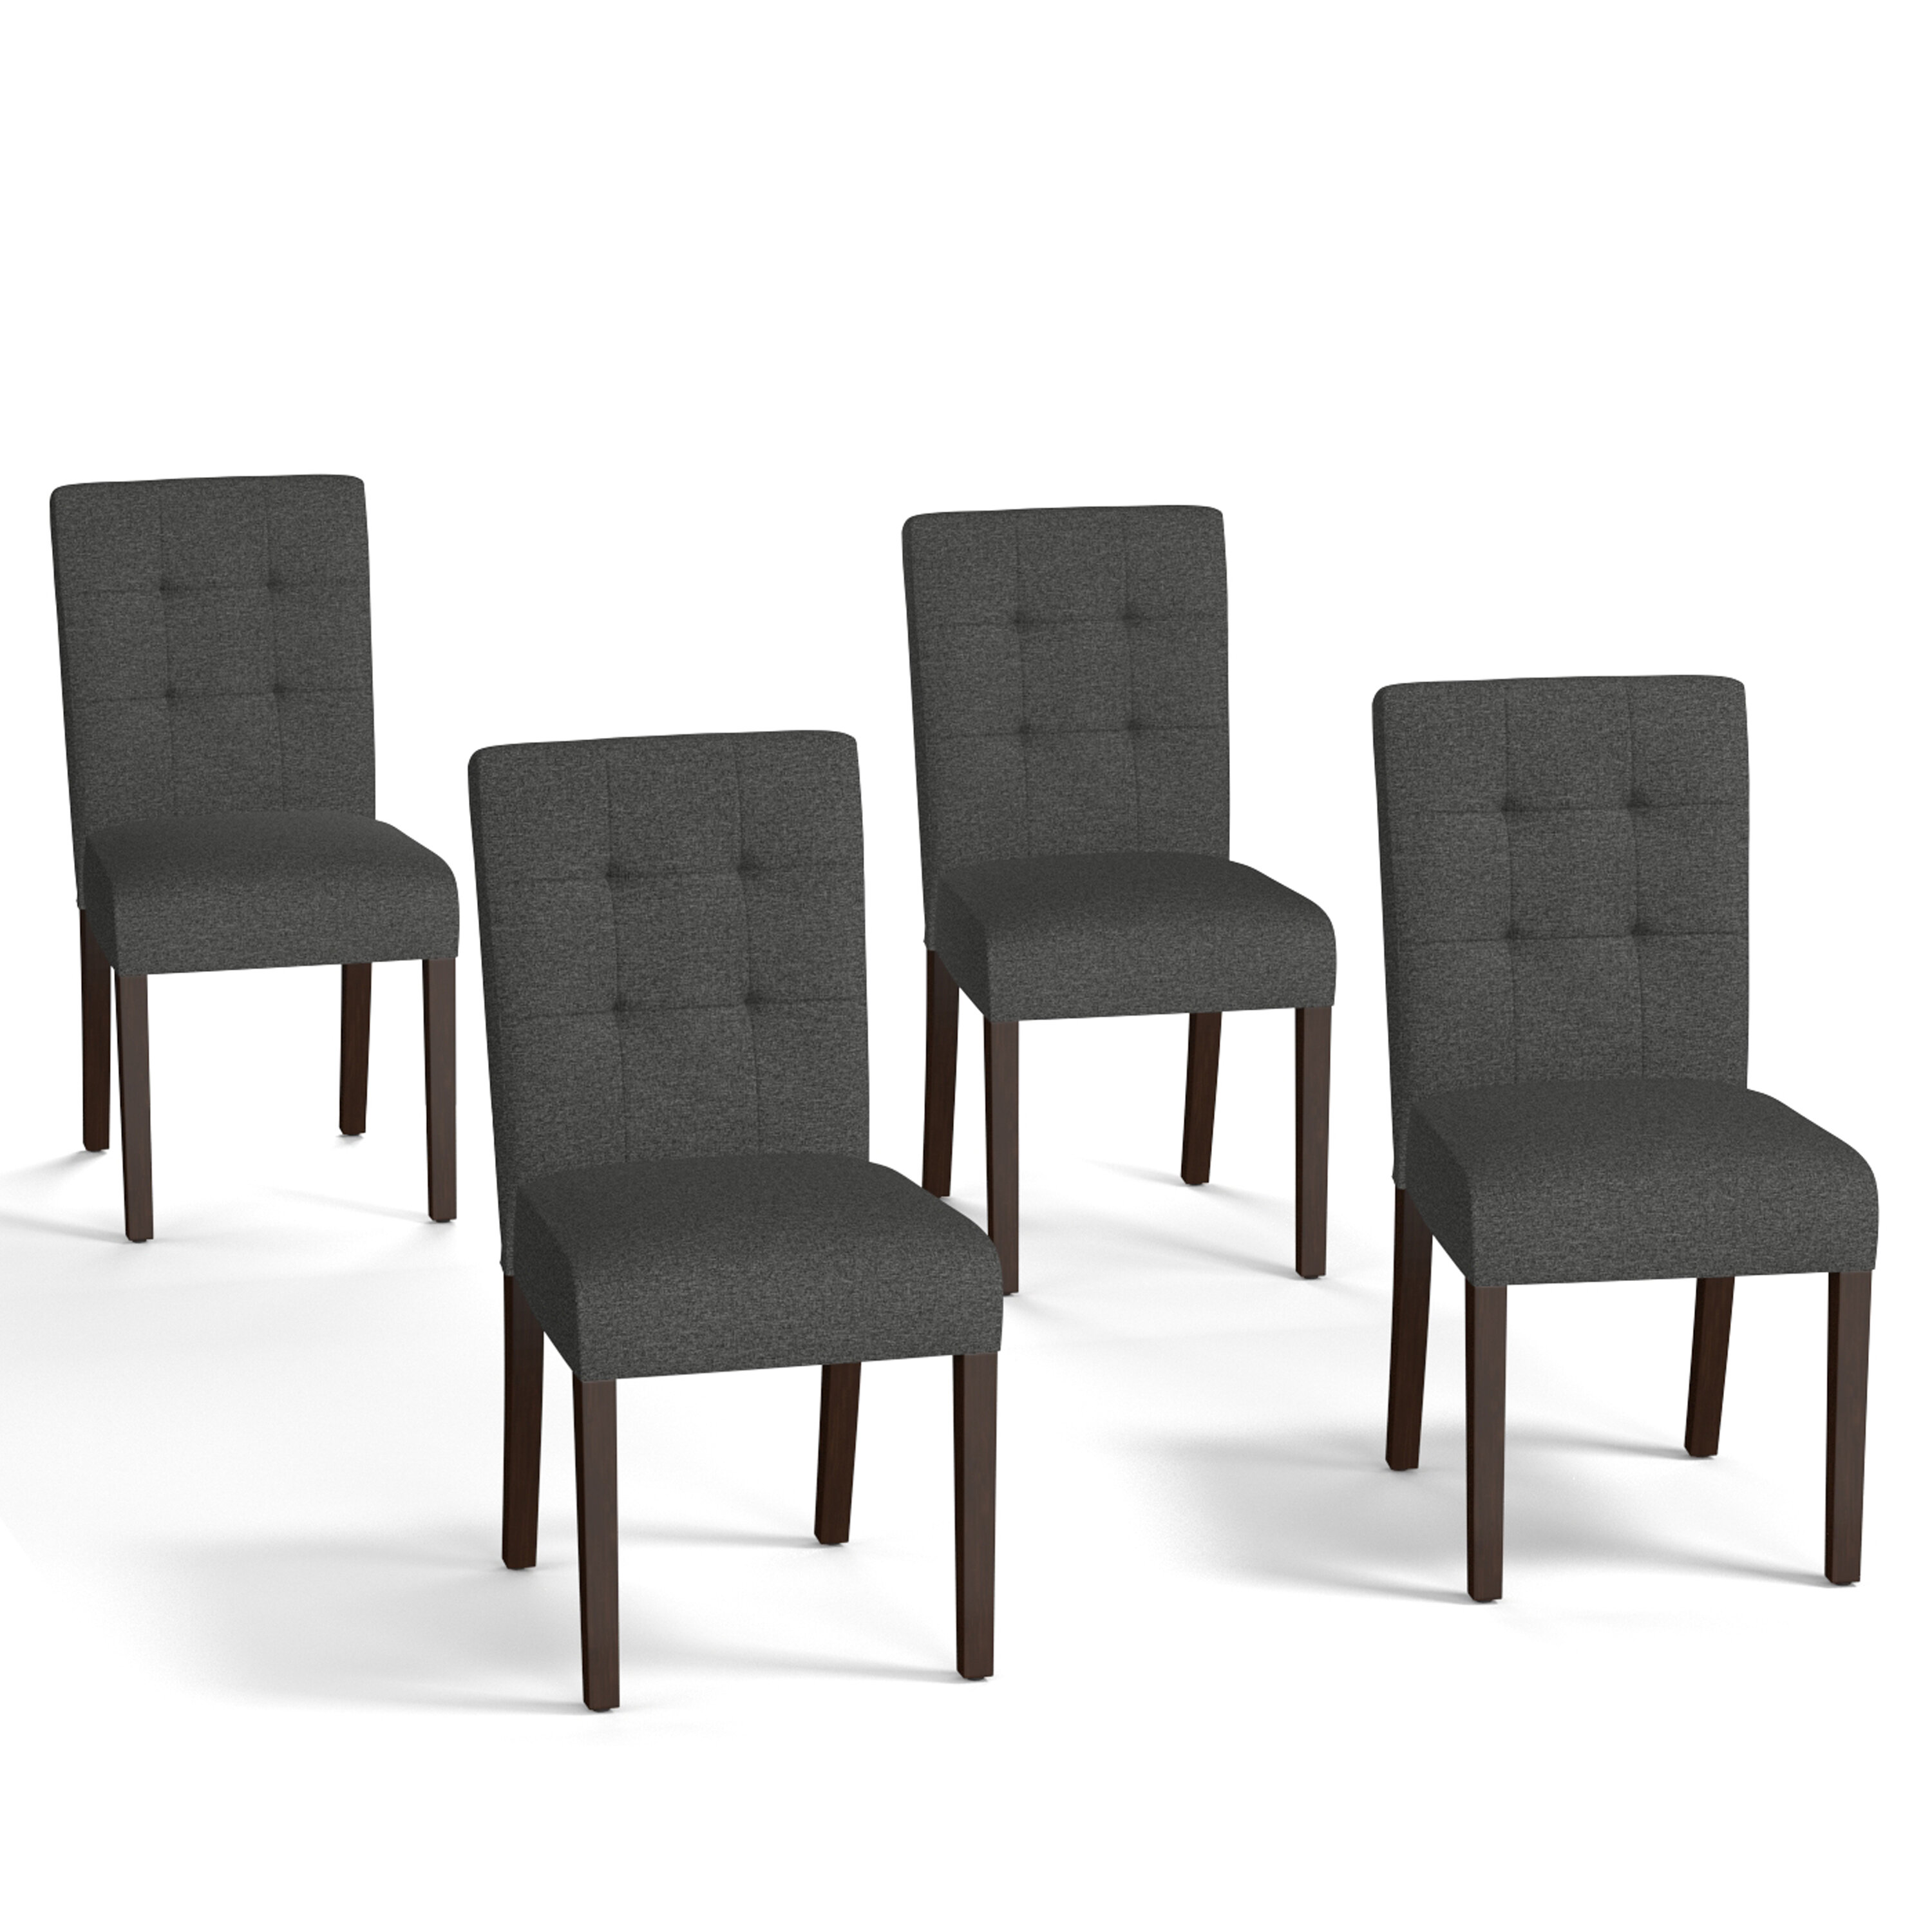 Isidora Upholstered Dining Chair